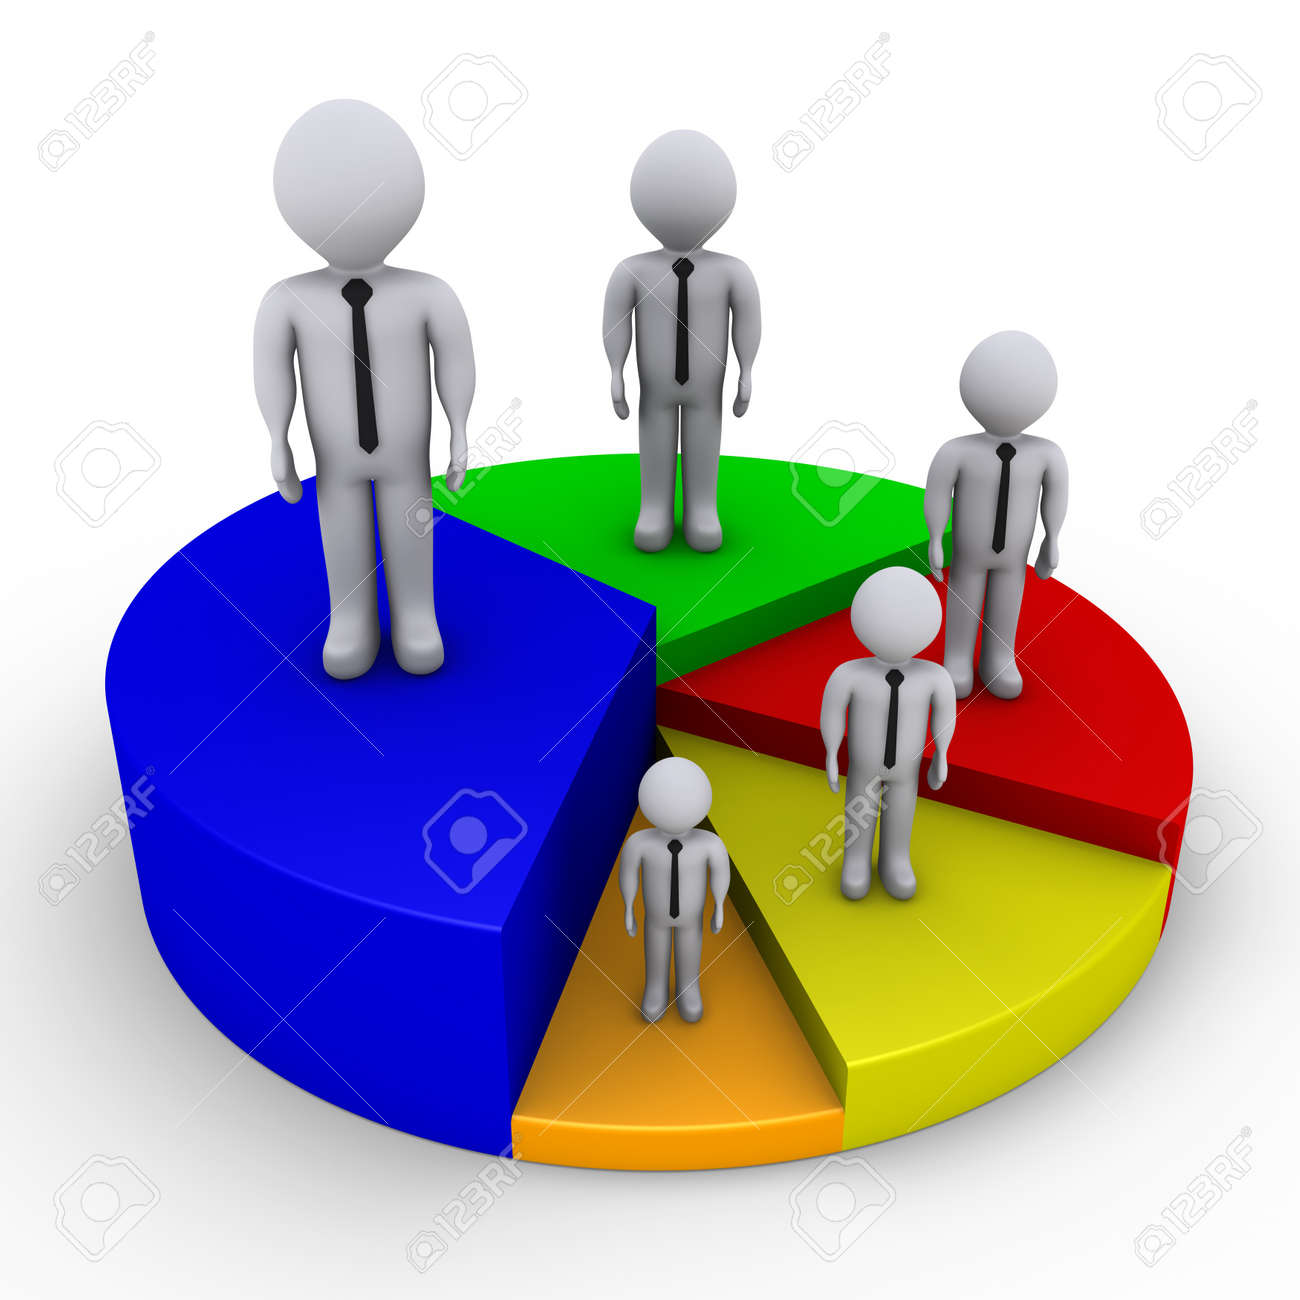 Different sized 3d businessmen on pieces of pie chart stock photo different sized 3d businessmen on pieces of pie chart stock photo 14522993 nvjuhfo Images